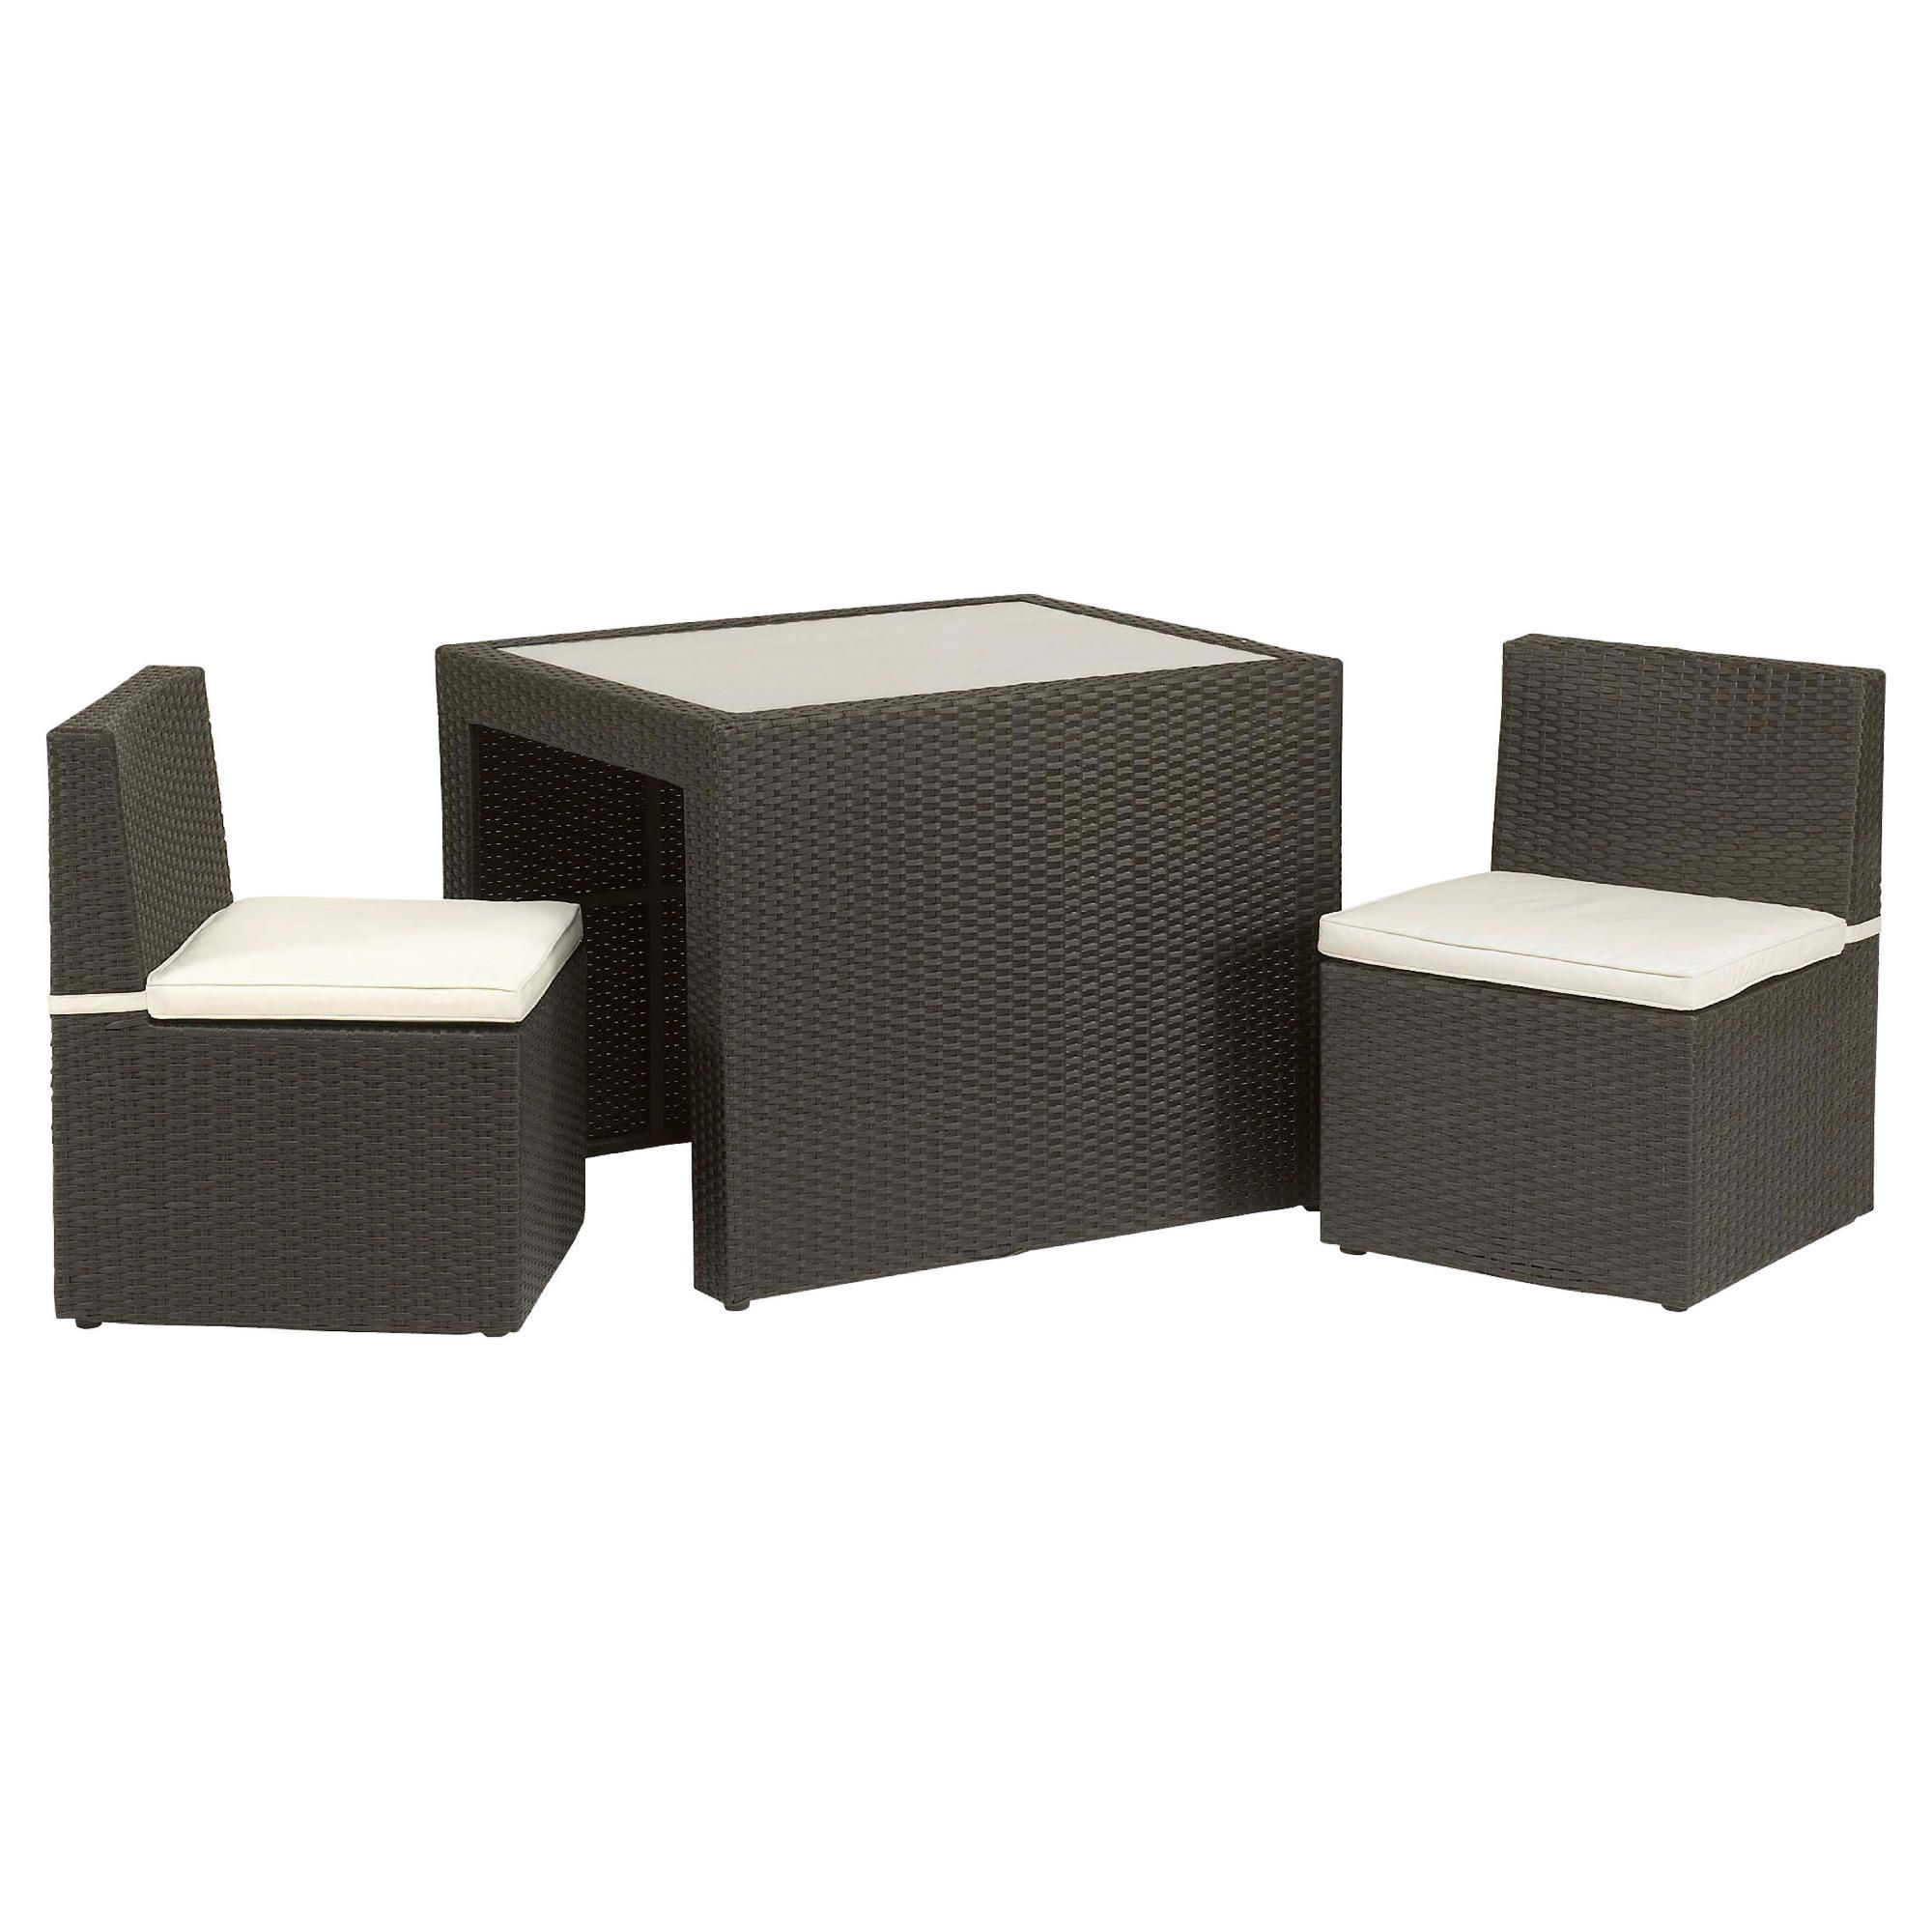 Royalcraft Cannes Breakfast Set - Brown at Tesco Direct